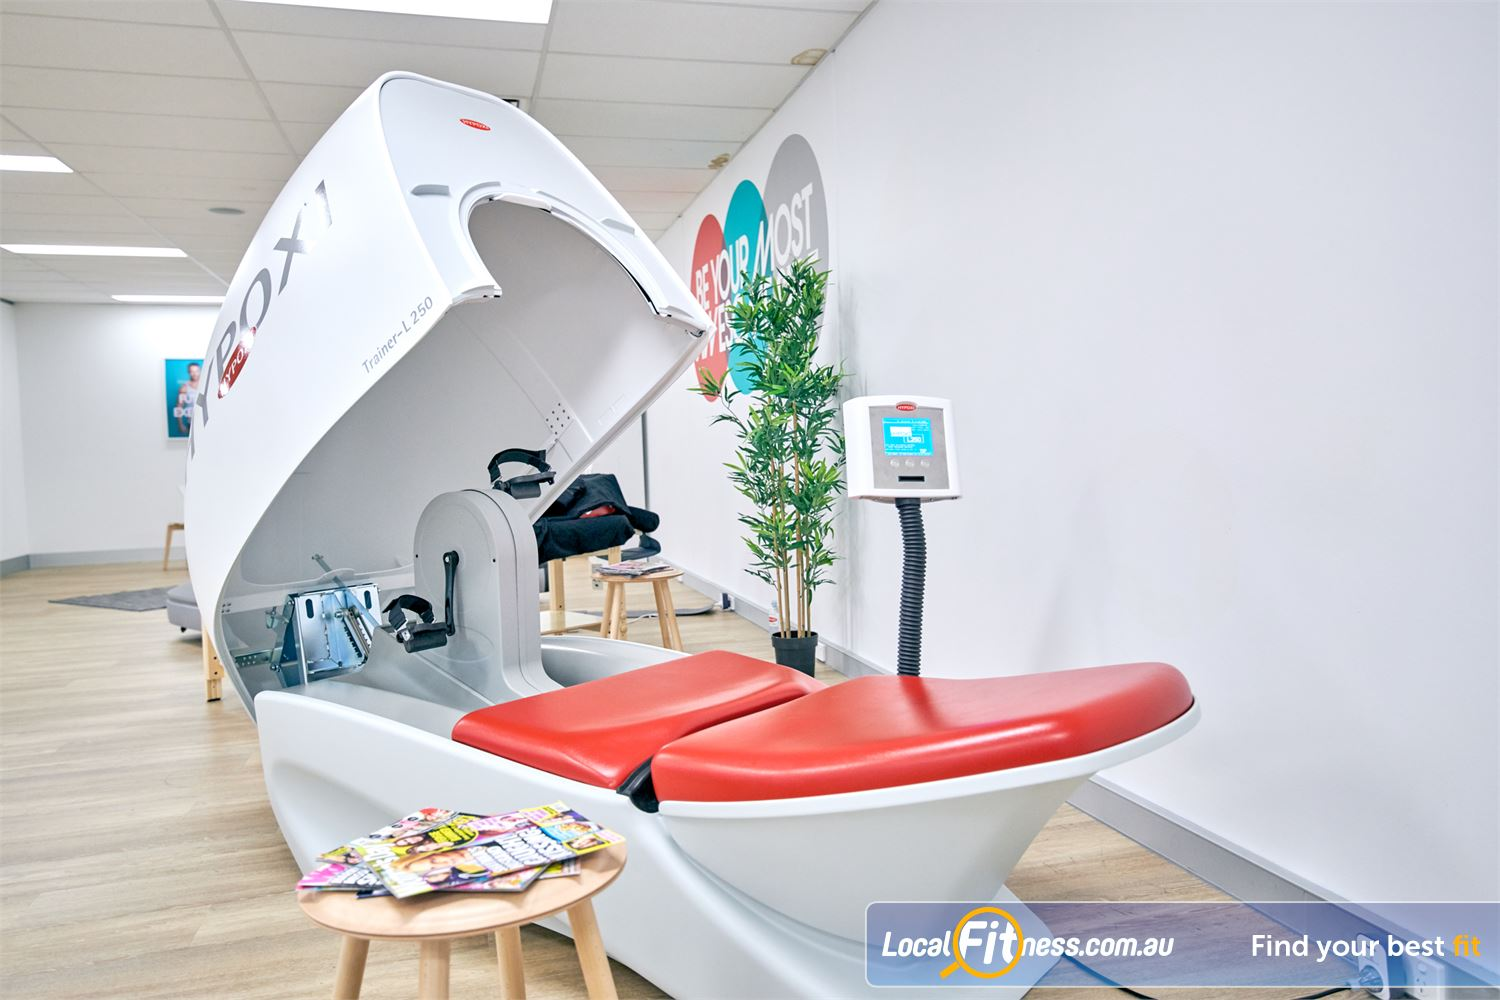 HYPOXI Weight Loss Glen Waverley The HYPOXI L250 is like a cycle machine from the future.